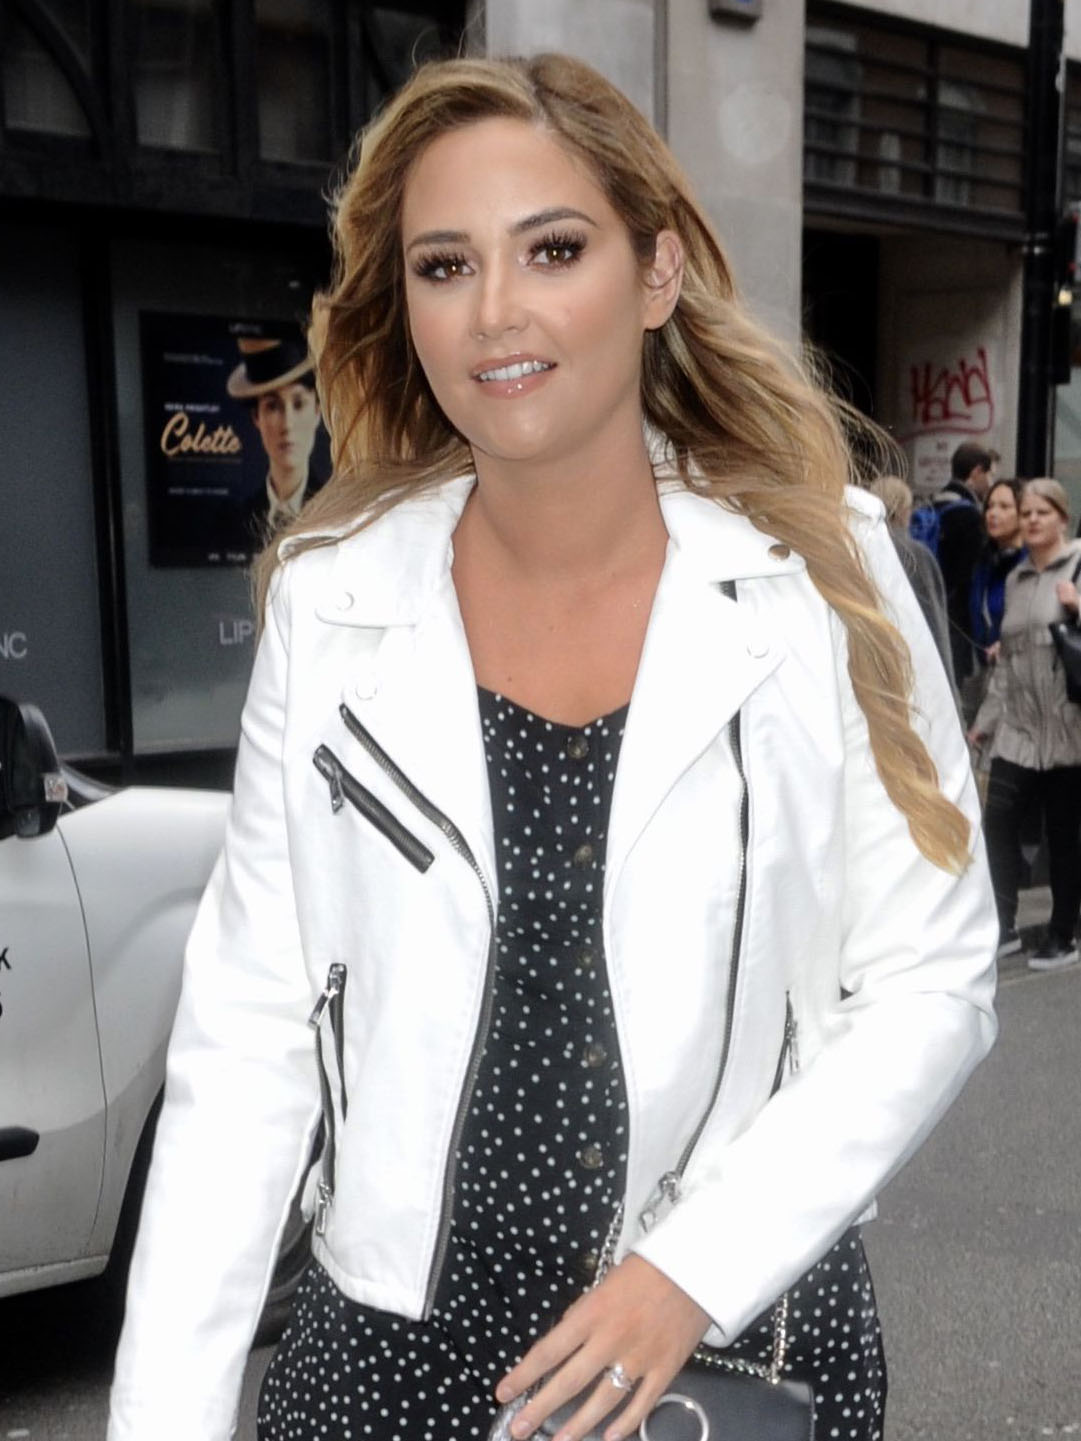 Jacqueline Jossa admits she isn't 'feeling as confident as she wanted' in bikini holiday snap